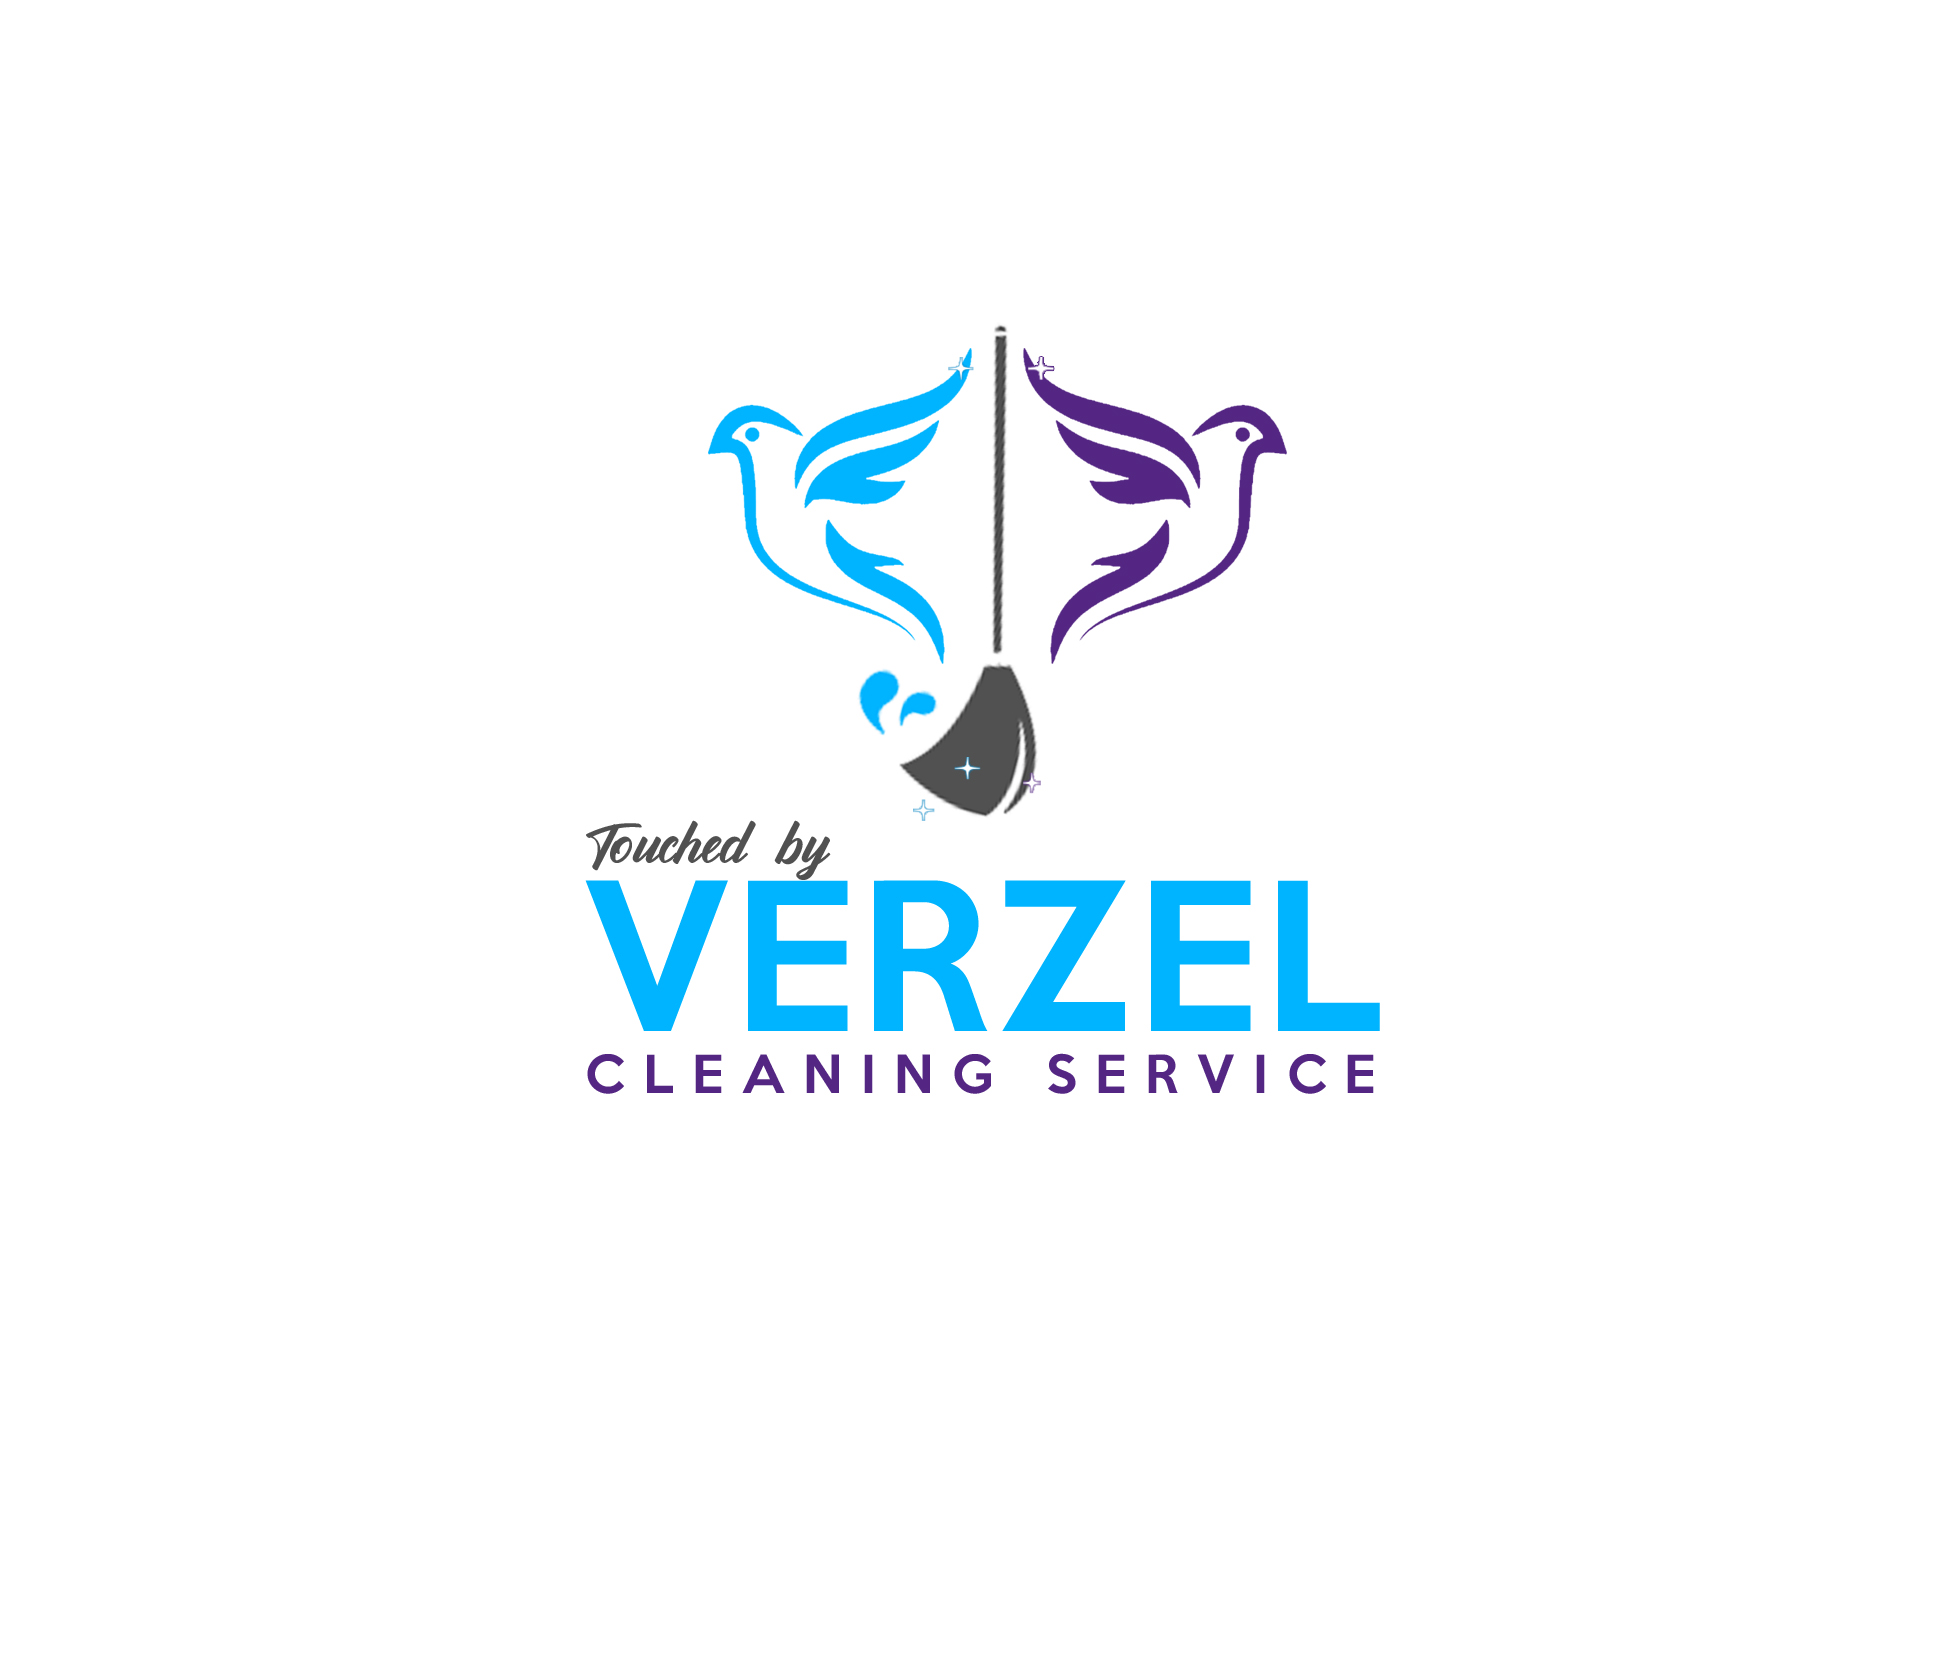 Touched By Verzel Cleaning Service - design #1892253